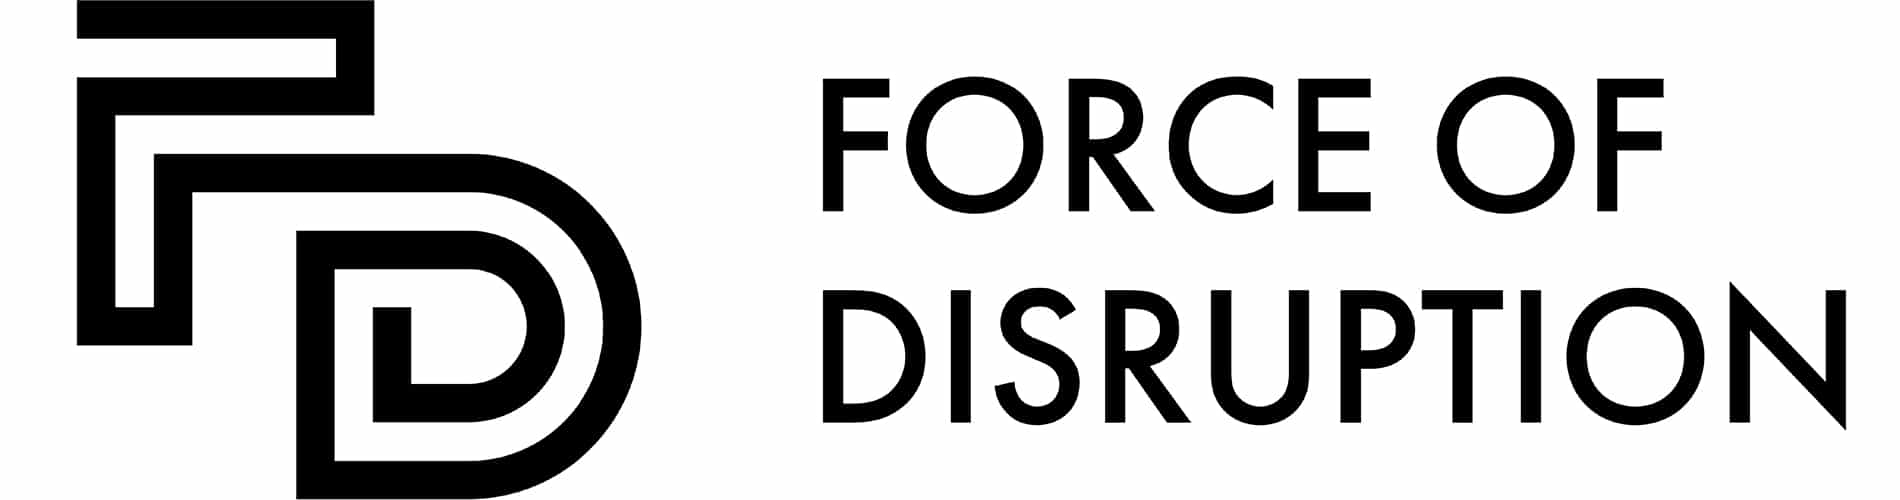 Force of Disruption GmbH